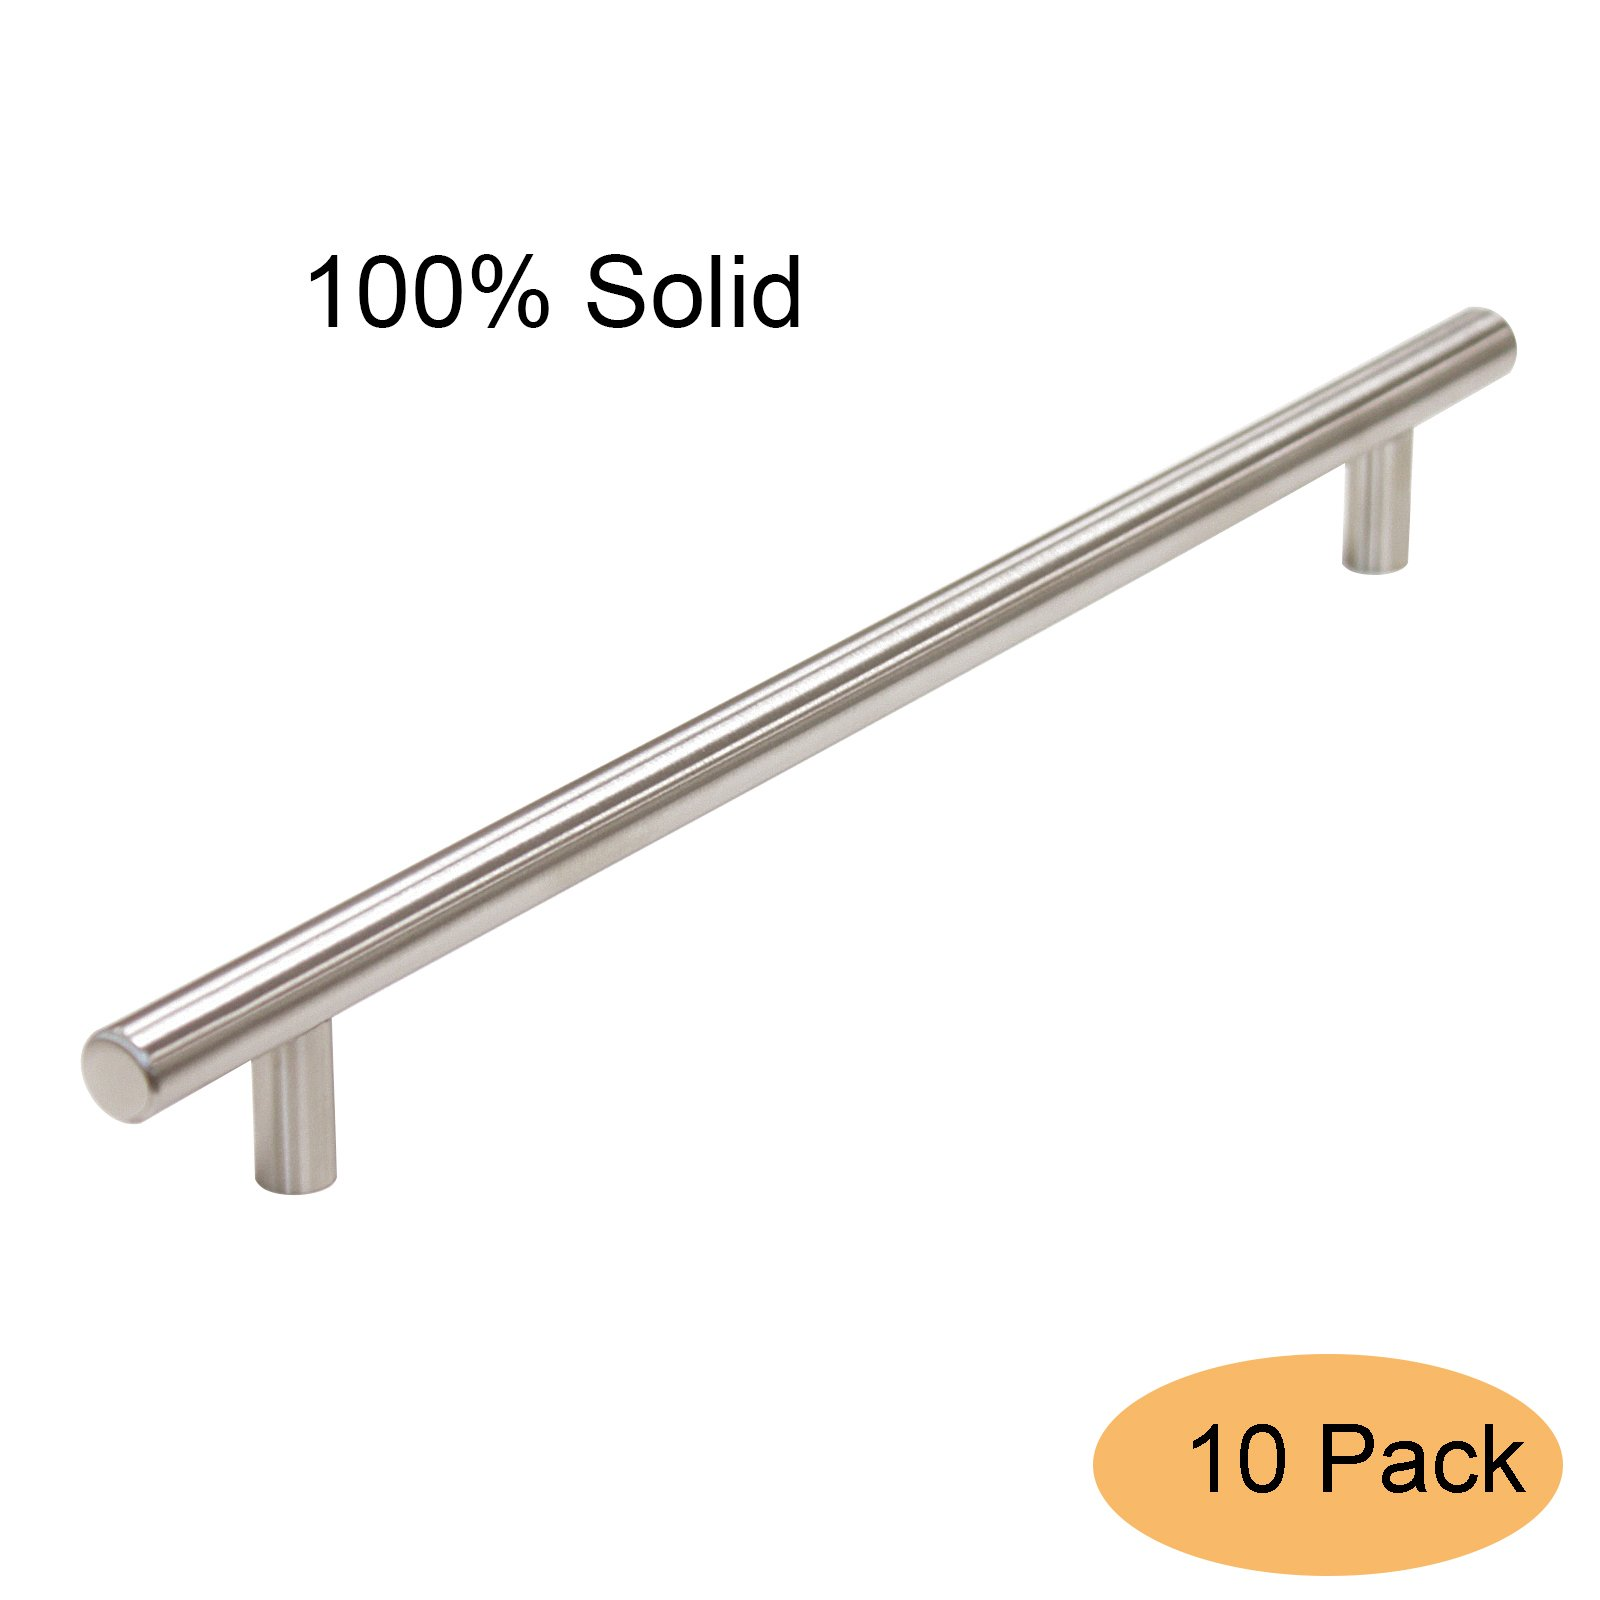 Gobrico Kitchen T-bar Cabinet Handle Pull for Furniture Drawer Cupboard Dresser 10'' Hole Center Solid Stainless Steel,10 Pack